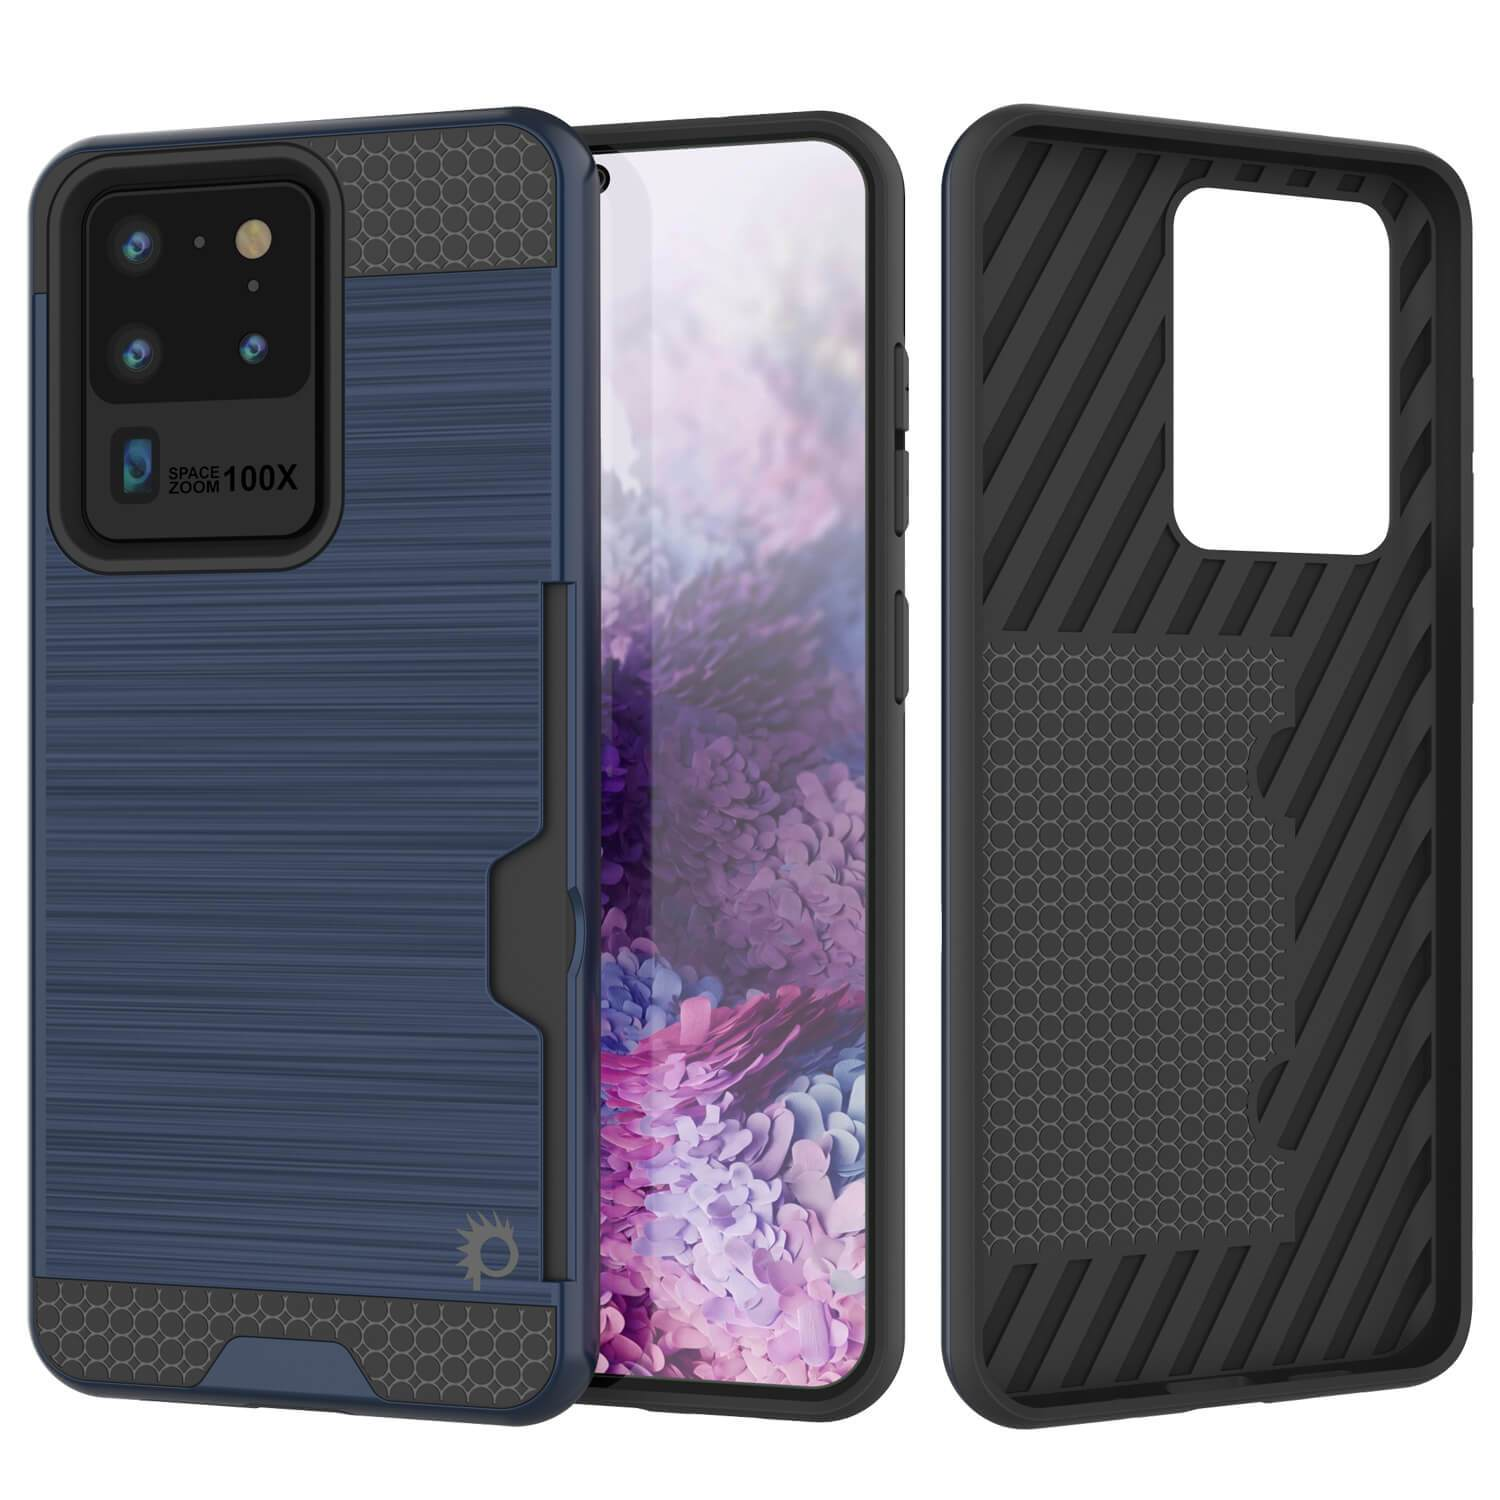 Galaxy S20 Ultra Case, PUNKcase [SLOT Series] [Slim Fit] Dual-Layer Armor Cover w/Integrated Anti-Shock System, Credit Card Slot [Navy]